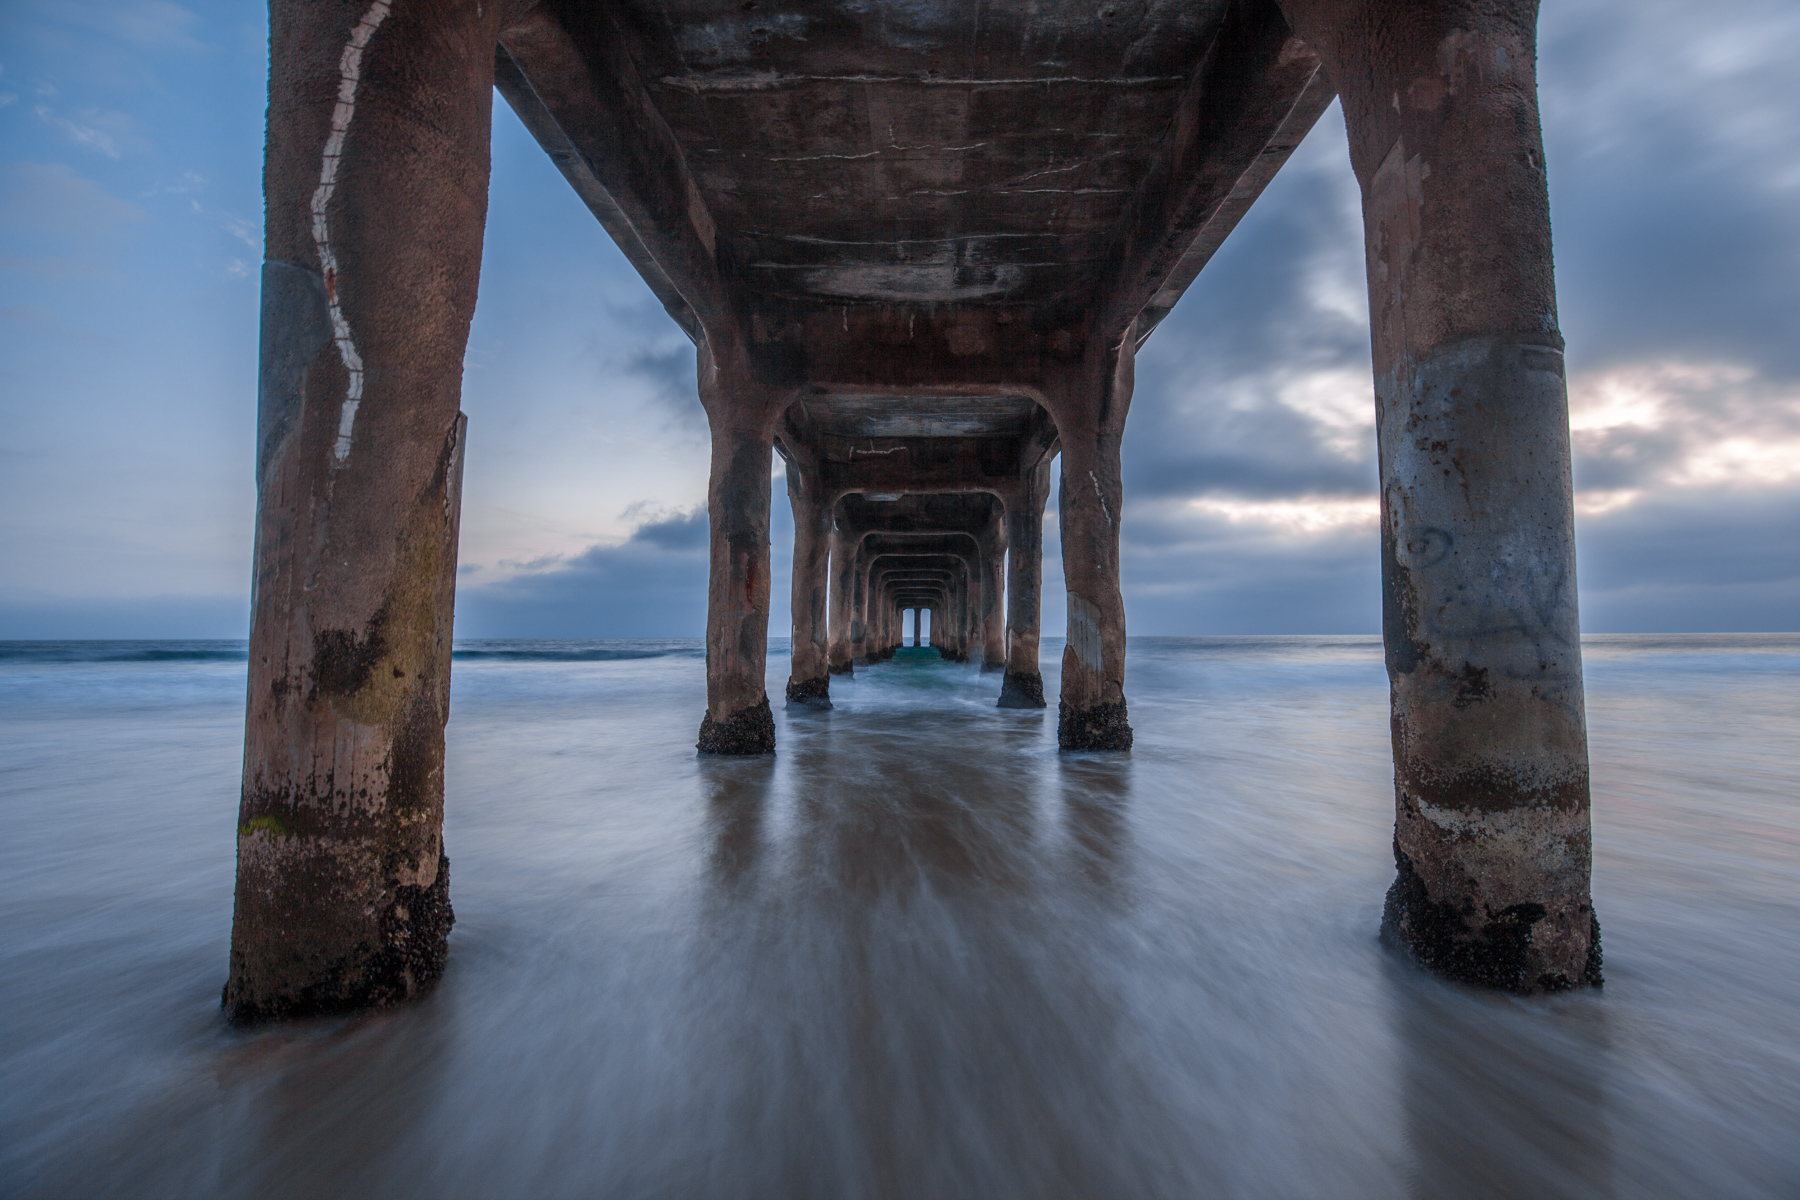 Long Exposure underneath Manhattan beach pier in California.